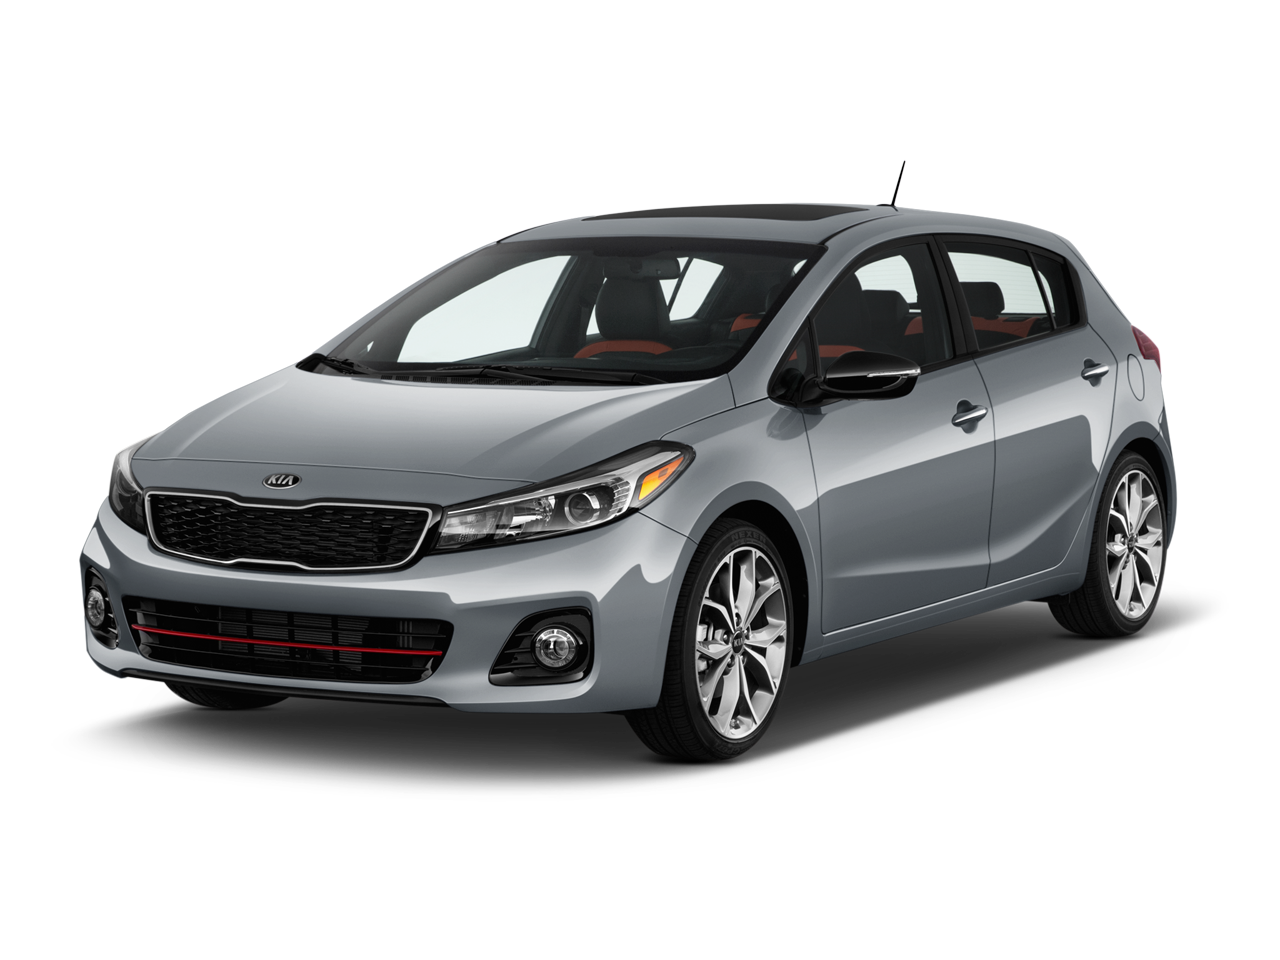 optima cochran lease new offers specials vehicle june current vehicles kia